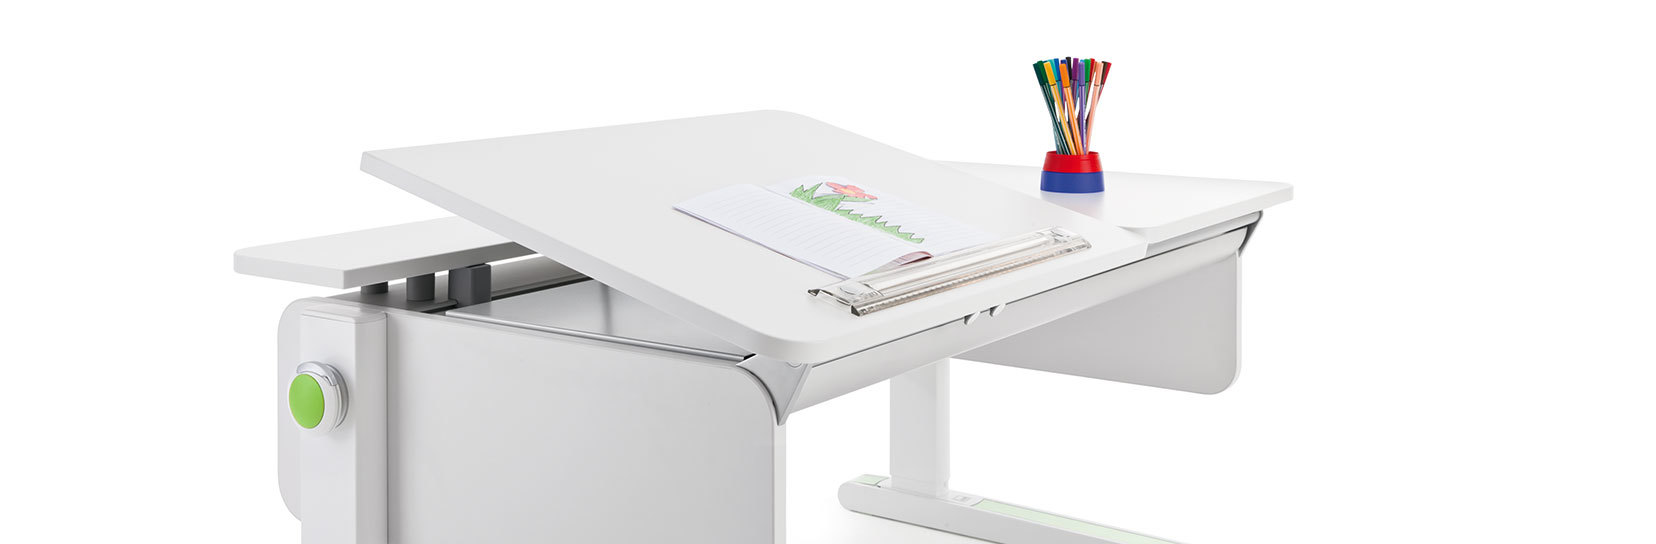 Teaser_moll_champion-childrens-desk_1656x544-02